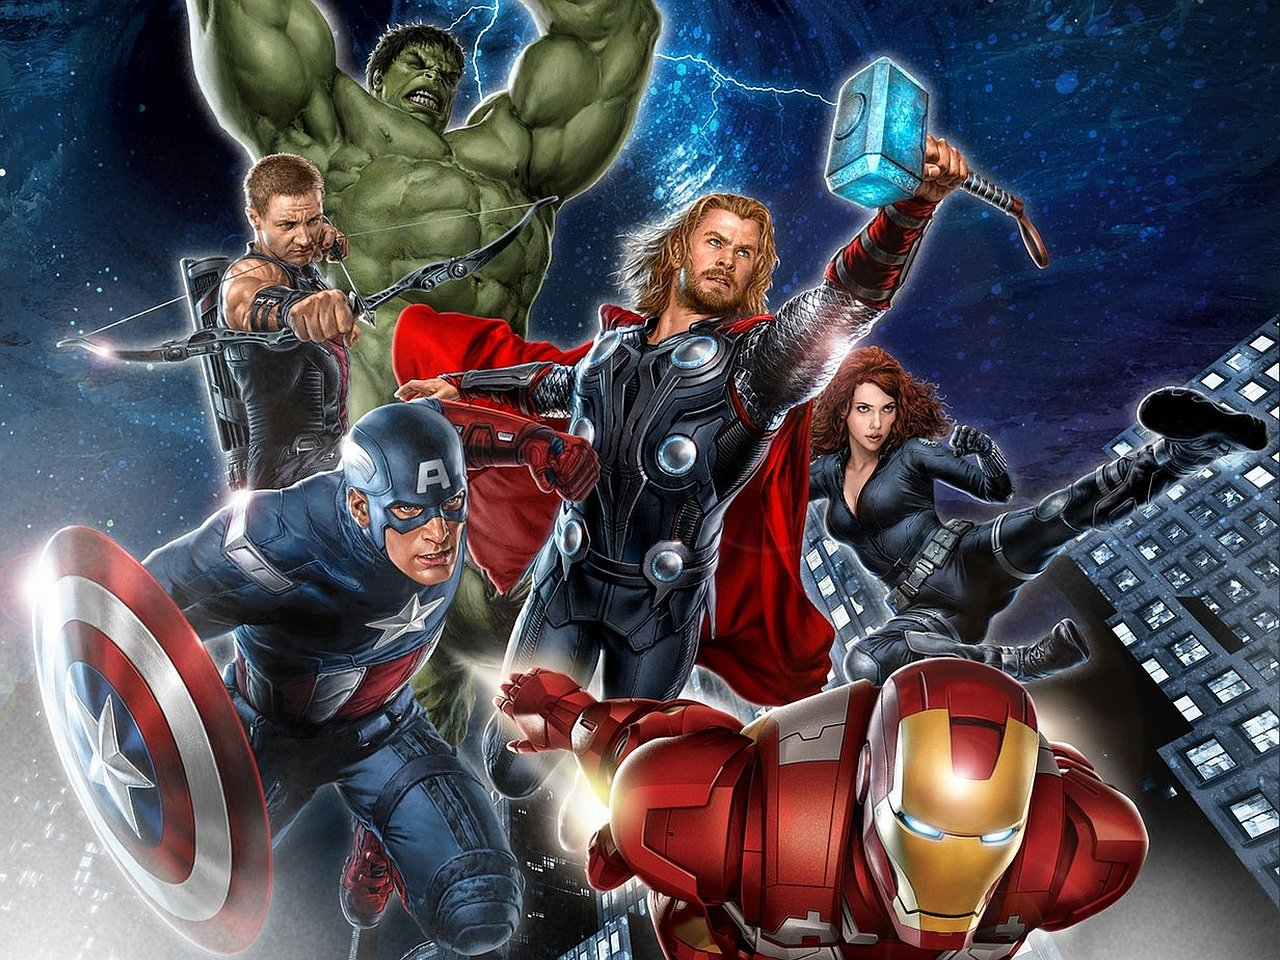 Avengers Computer Wallpapers Desktop Backgrounds 1280x960 ID 1280x960